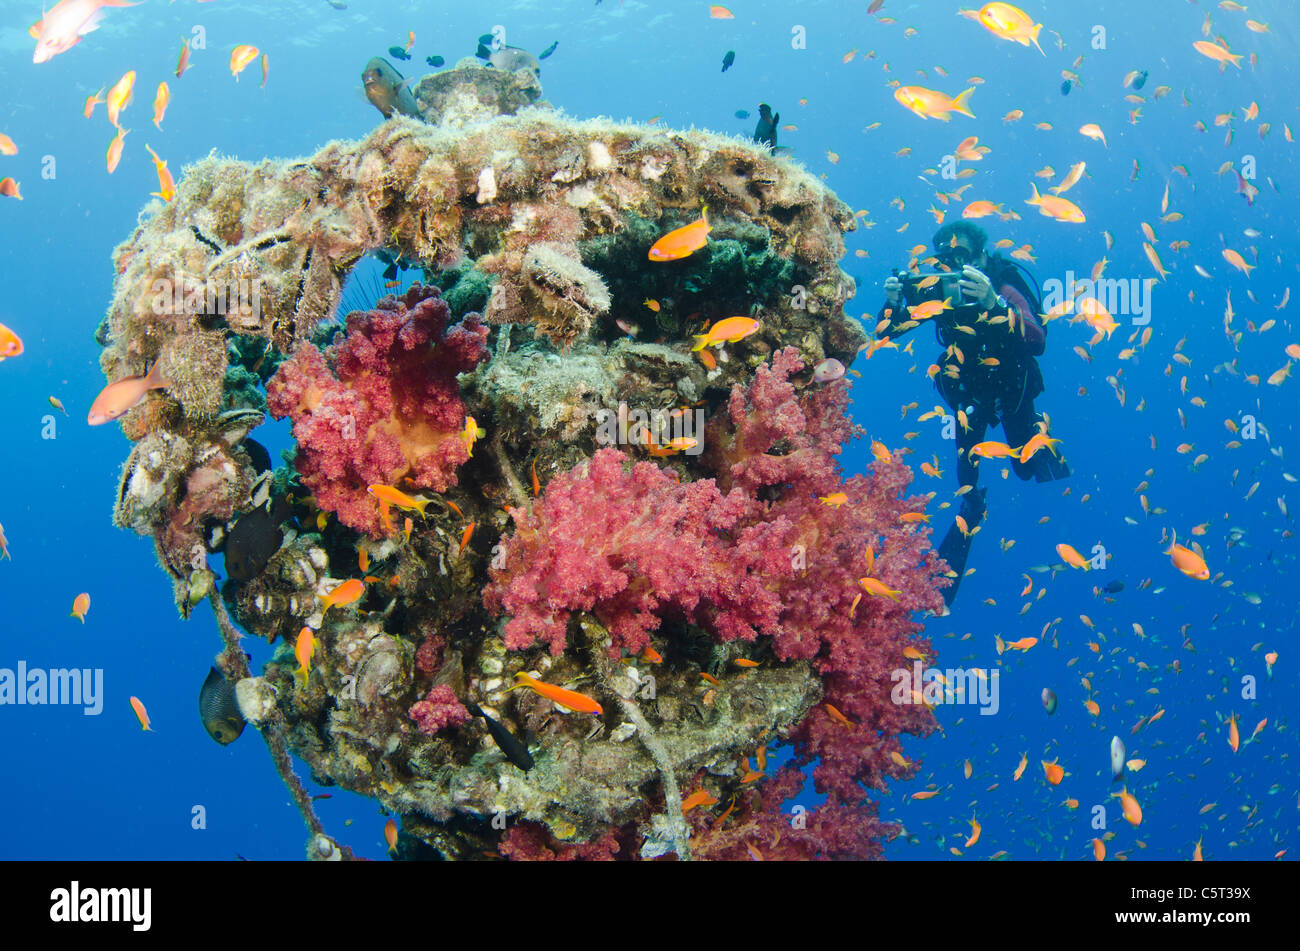 Coral growth on the buoy wreck structure, Nuweiba, Egypt, Sinai, Red Sea - Stock Image